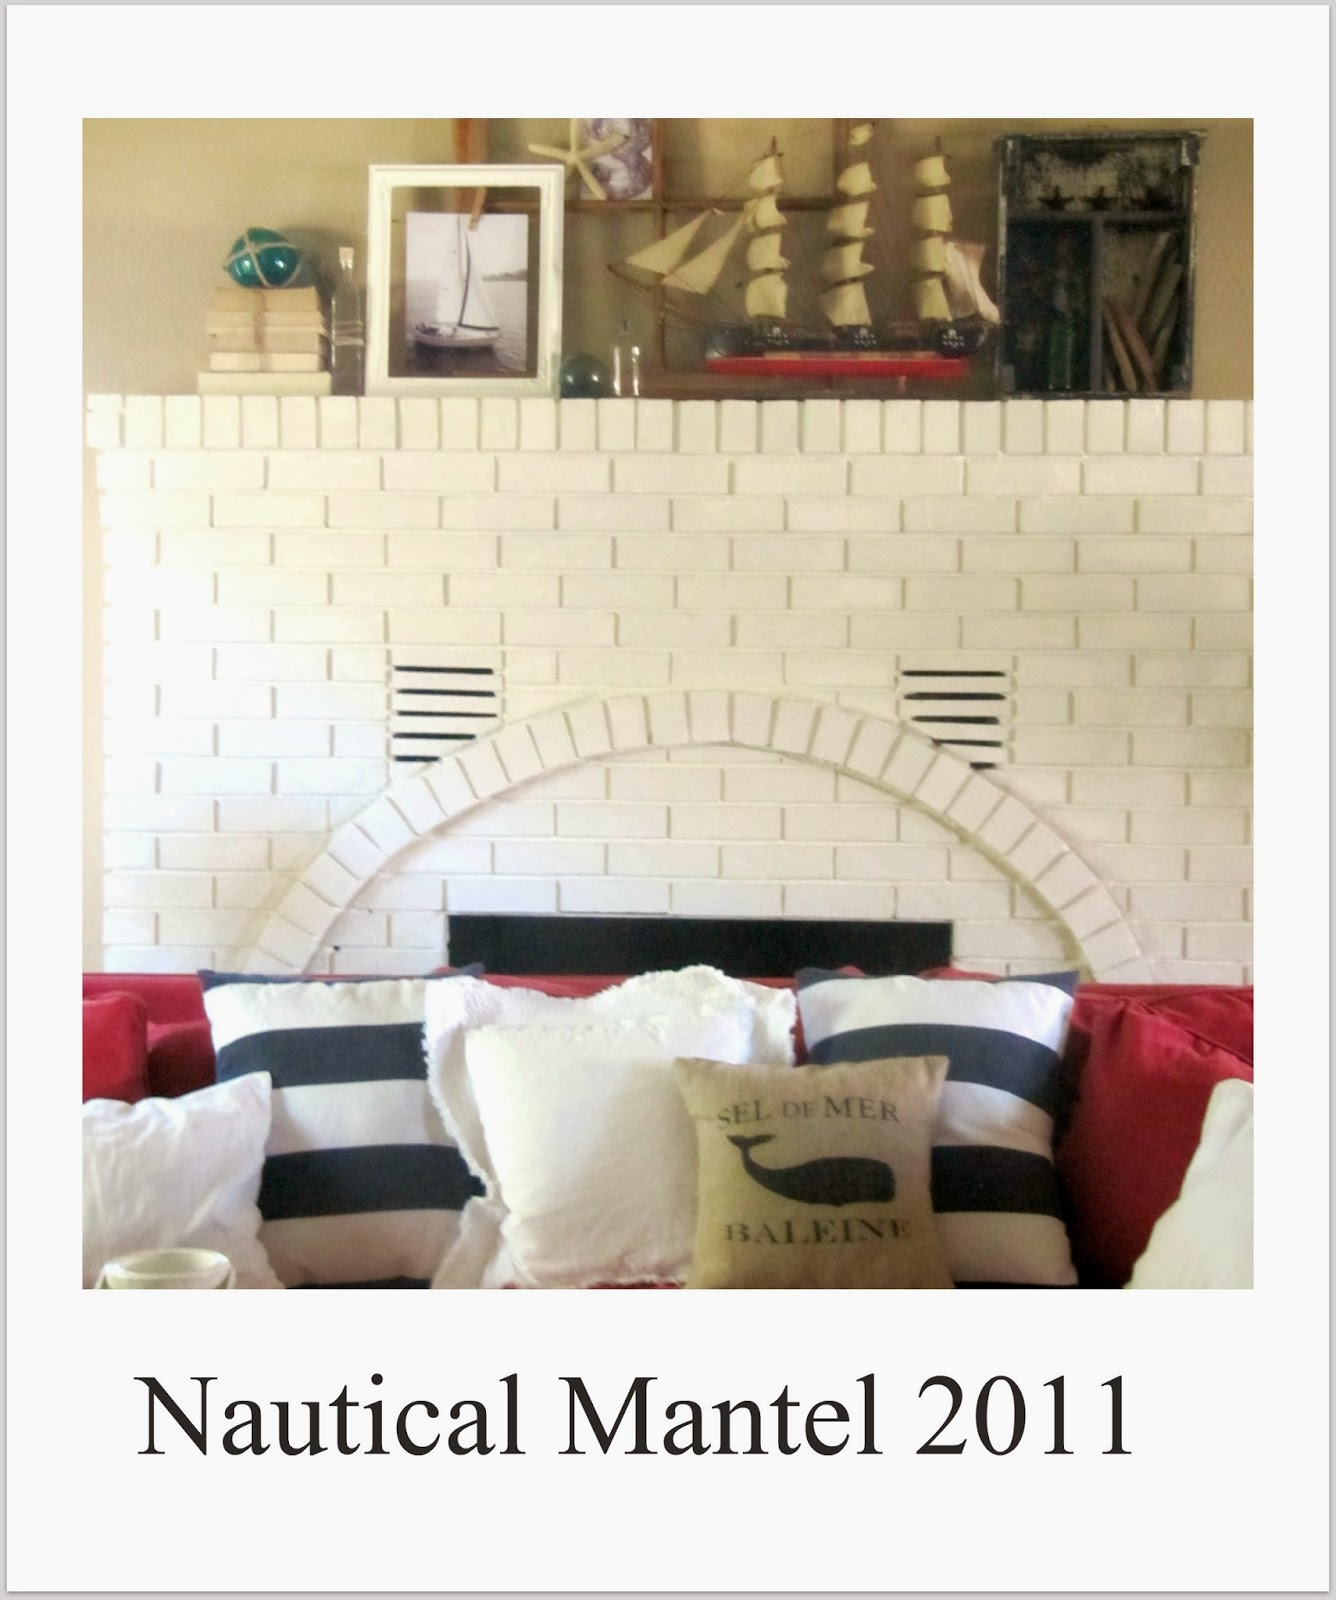 http://thewickerhouse.blogspot.com/2011/05/going-nautical.html